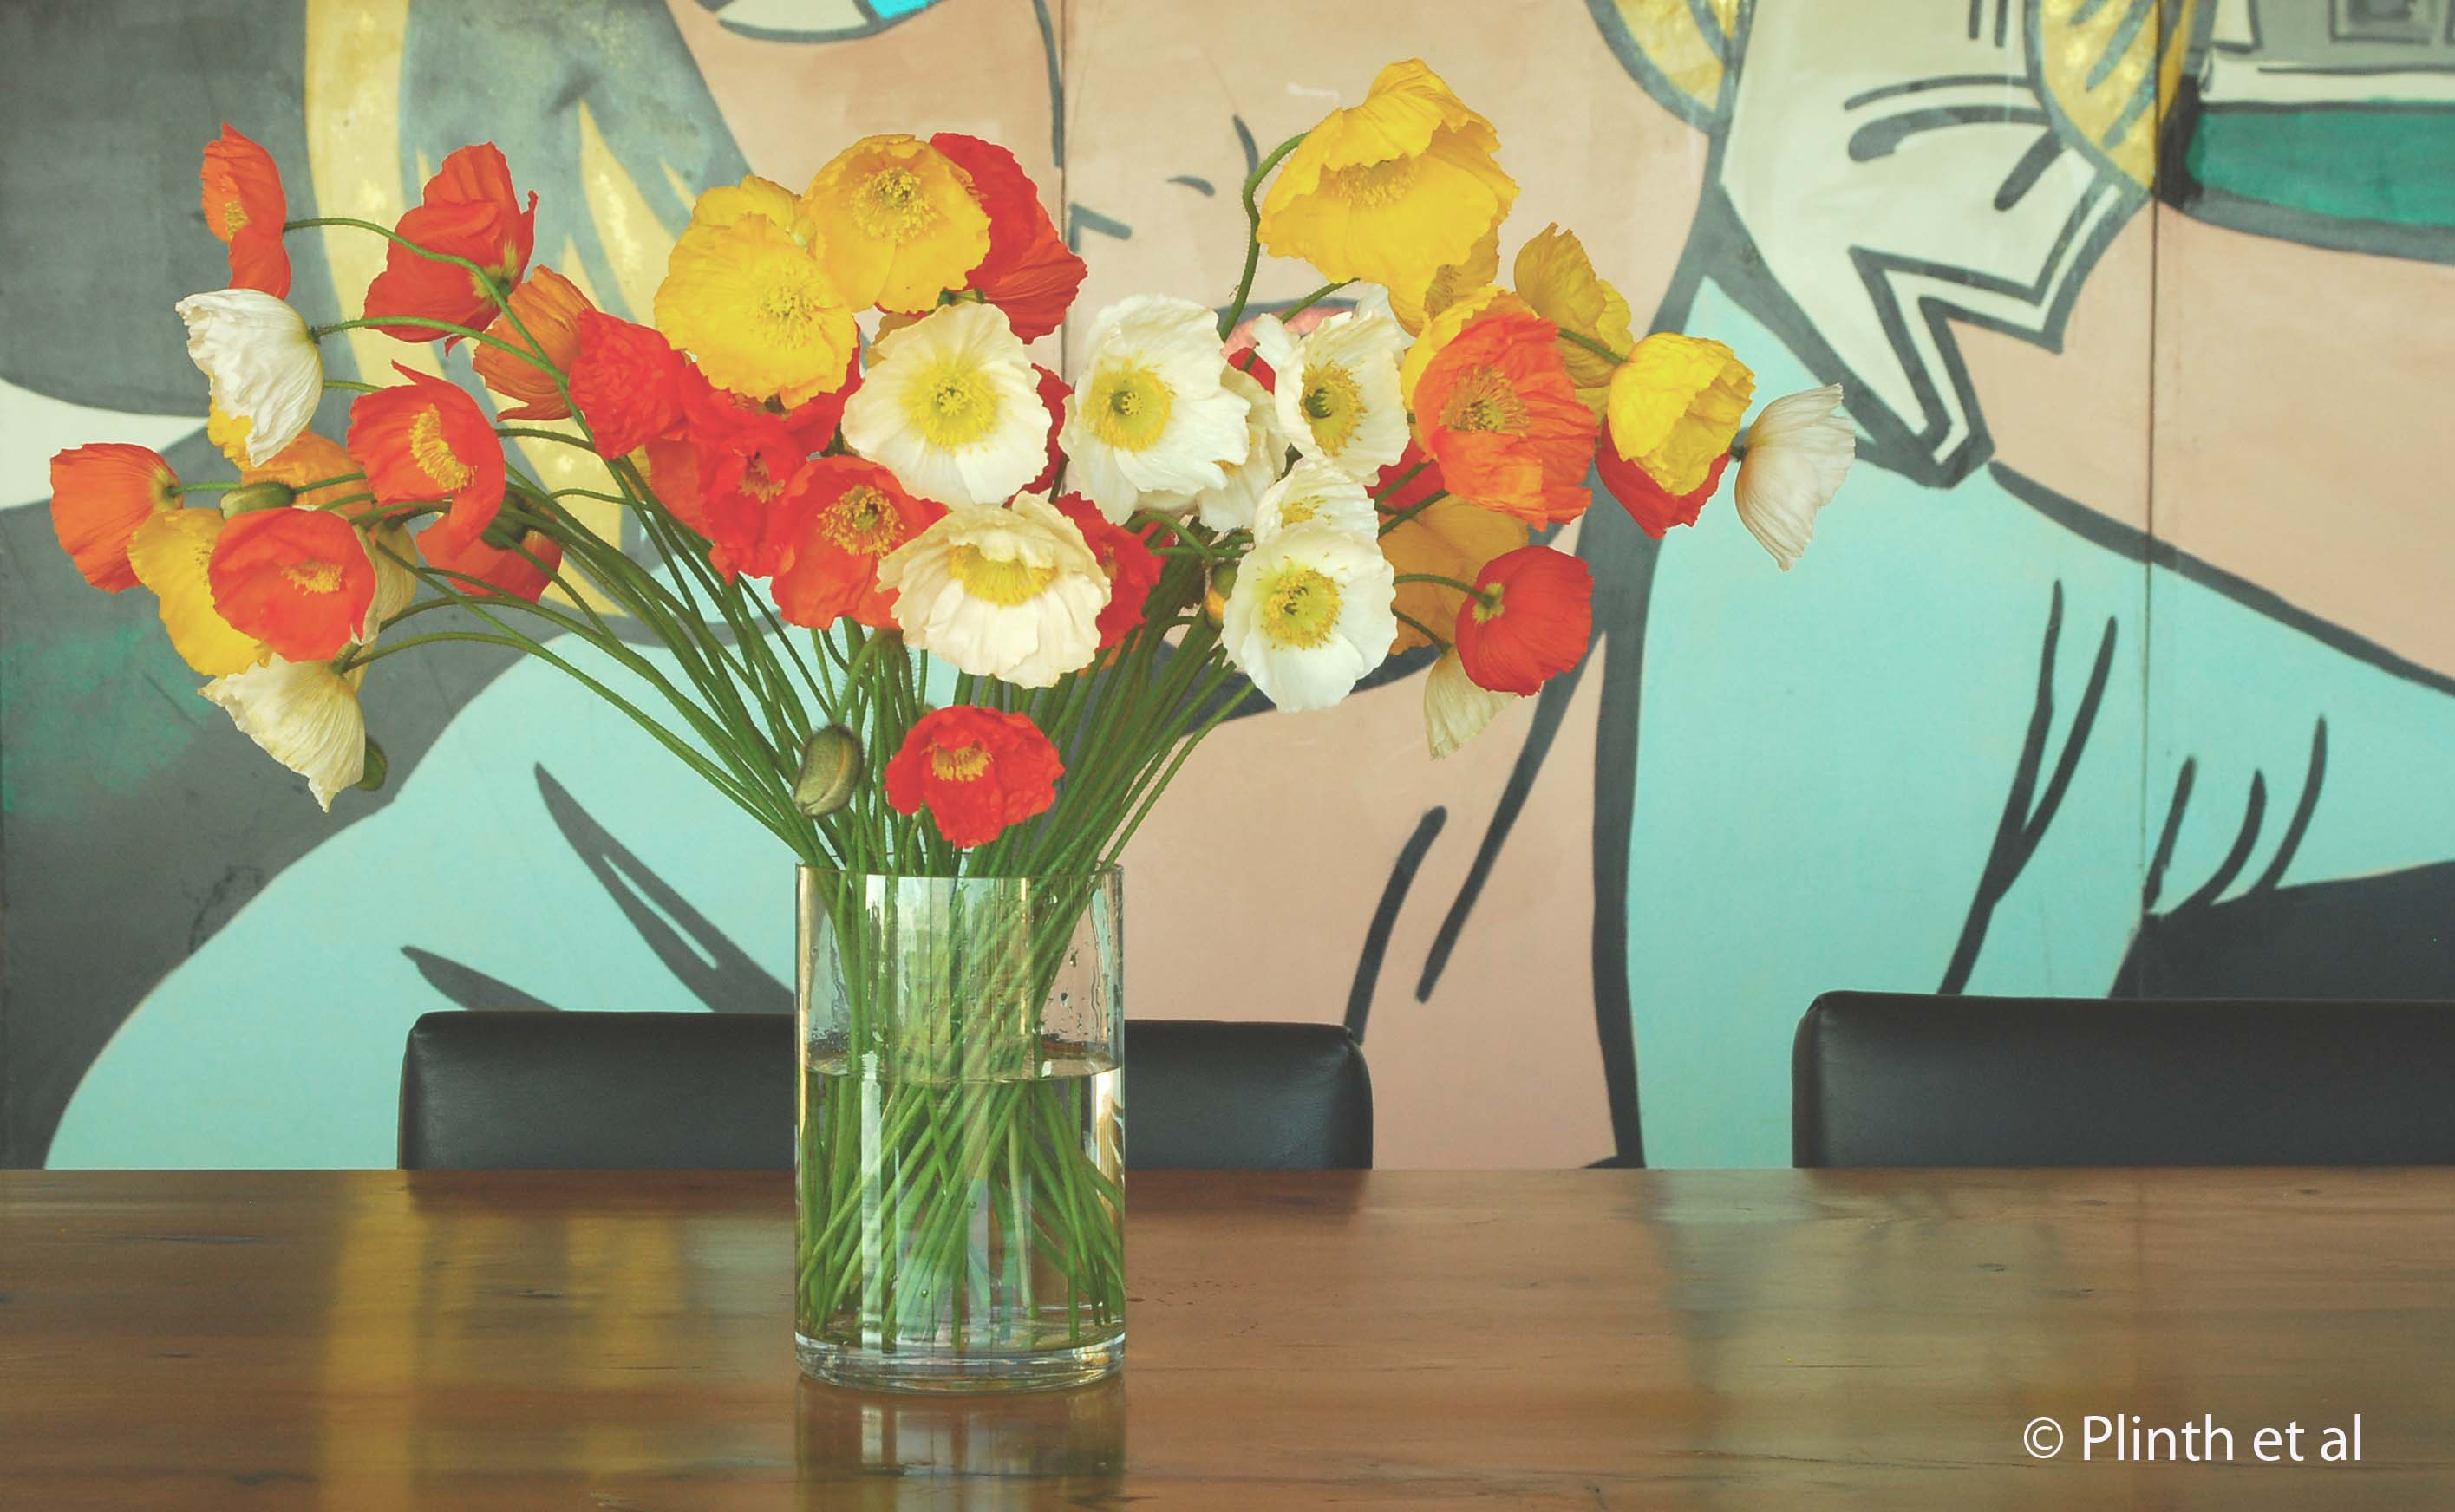 Poppies plinth et al cut iceland poppies stand out against the pop art painting private home tasmania mightylinksfo